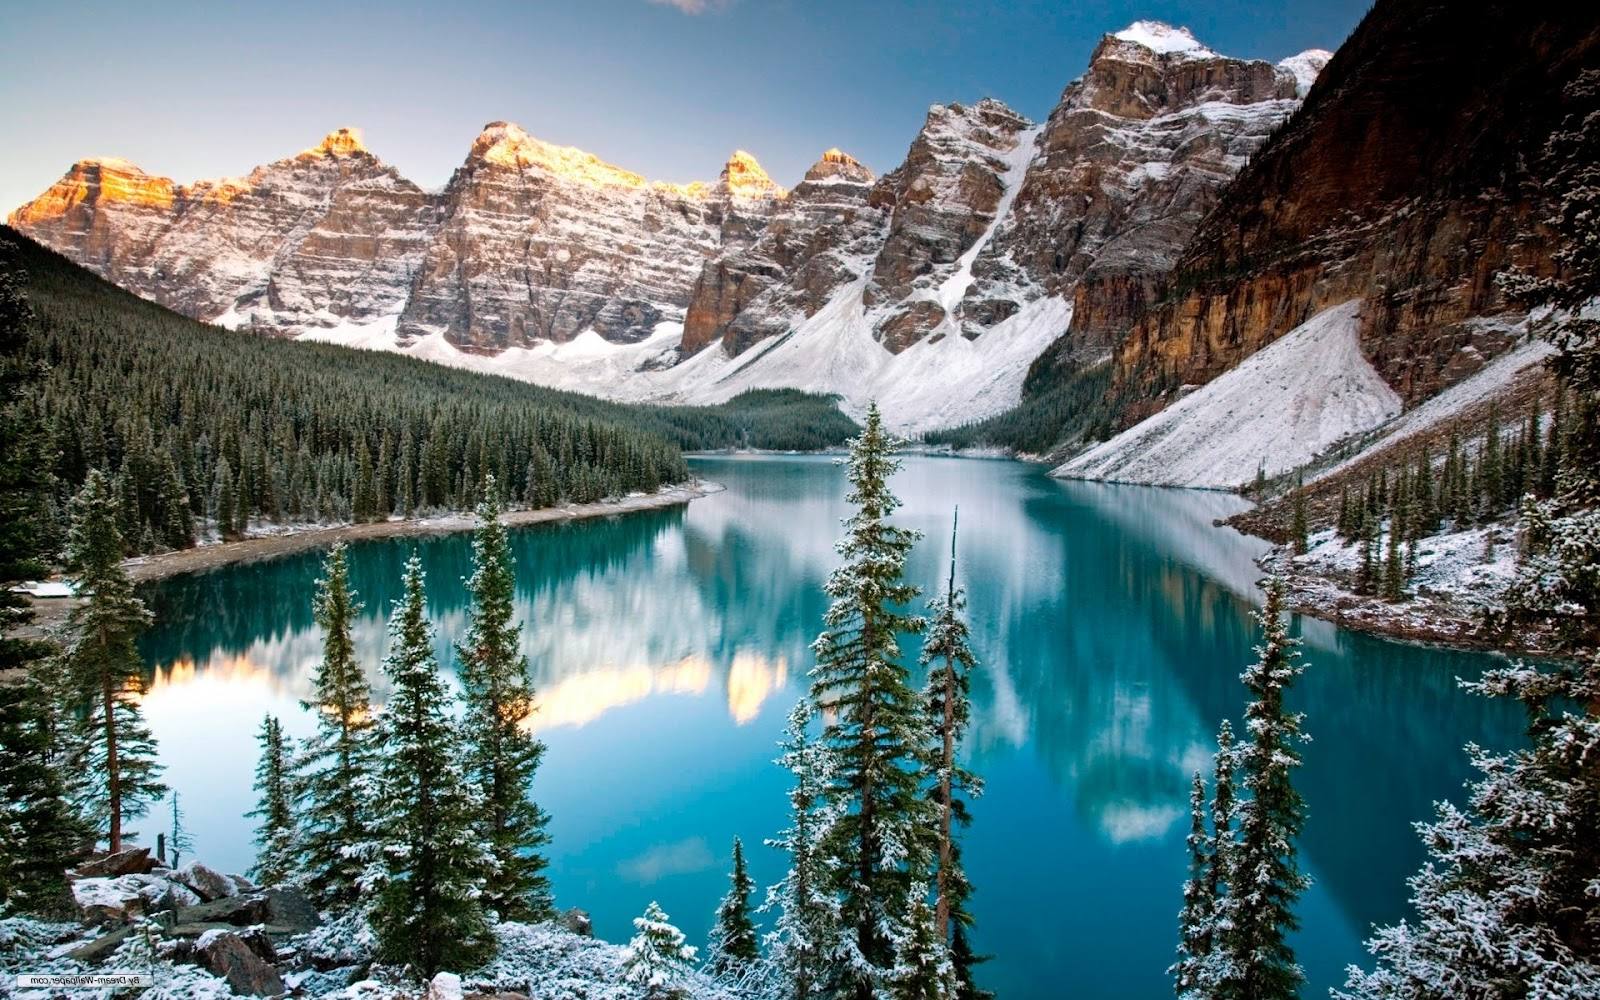 mountain screensavers and wallpaper backgrounds - photo #10